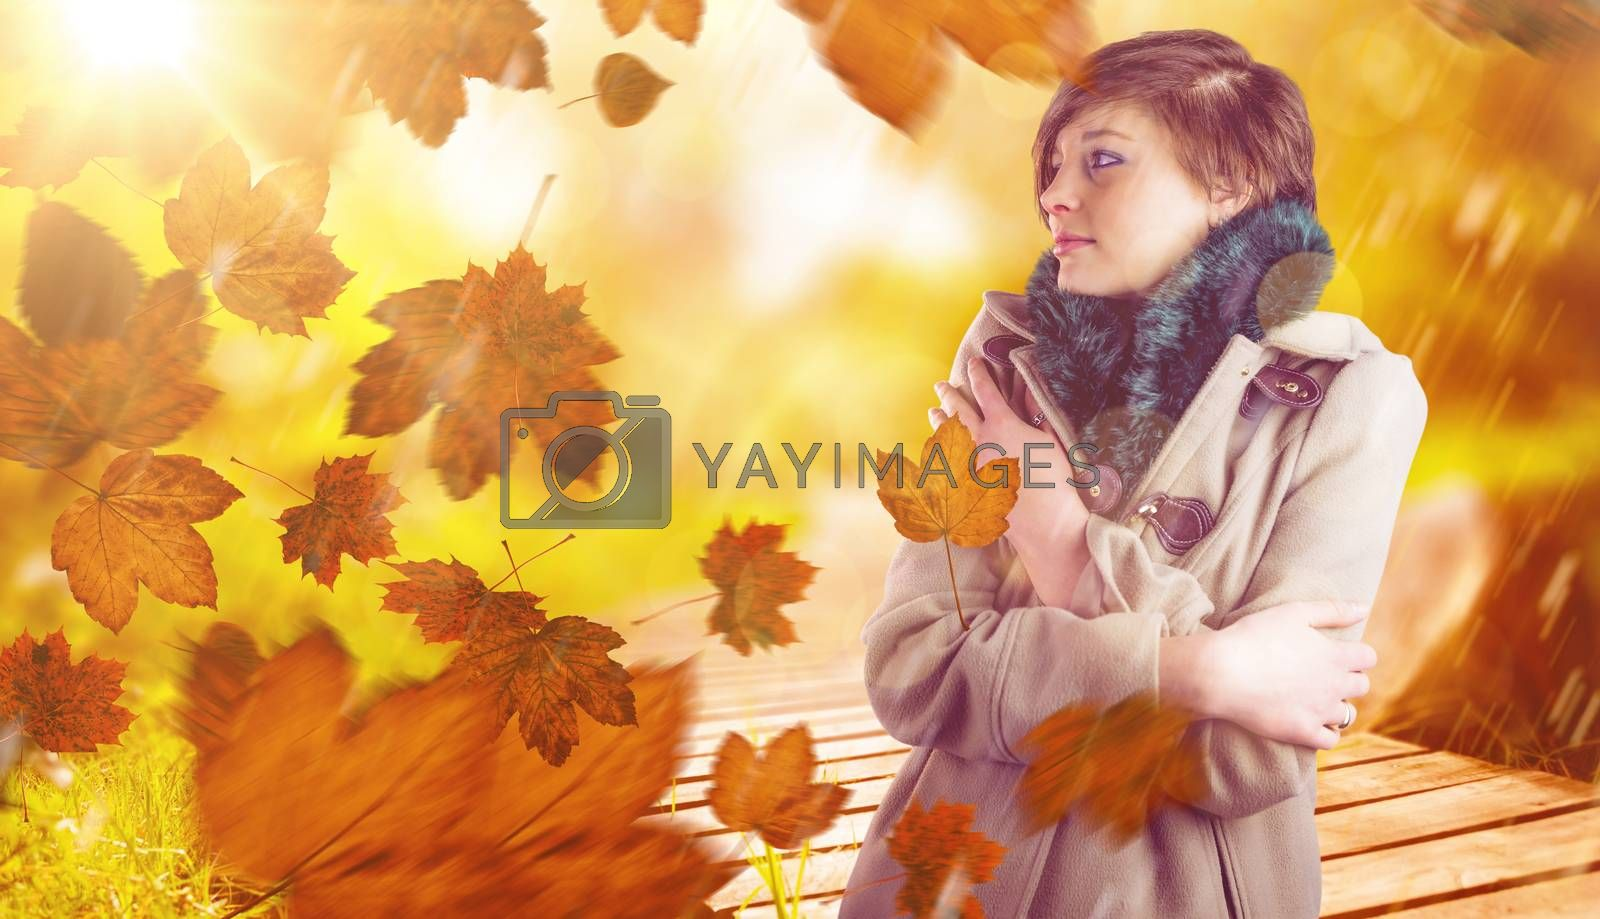 Thoughtful woman in winter coat against wooden trail across countryside